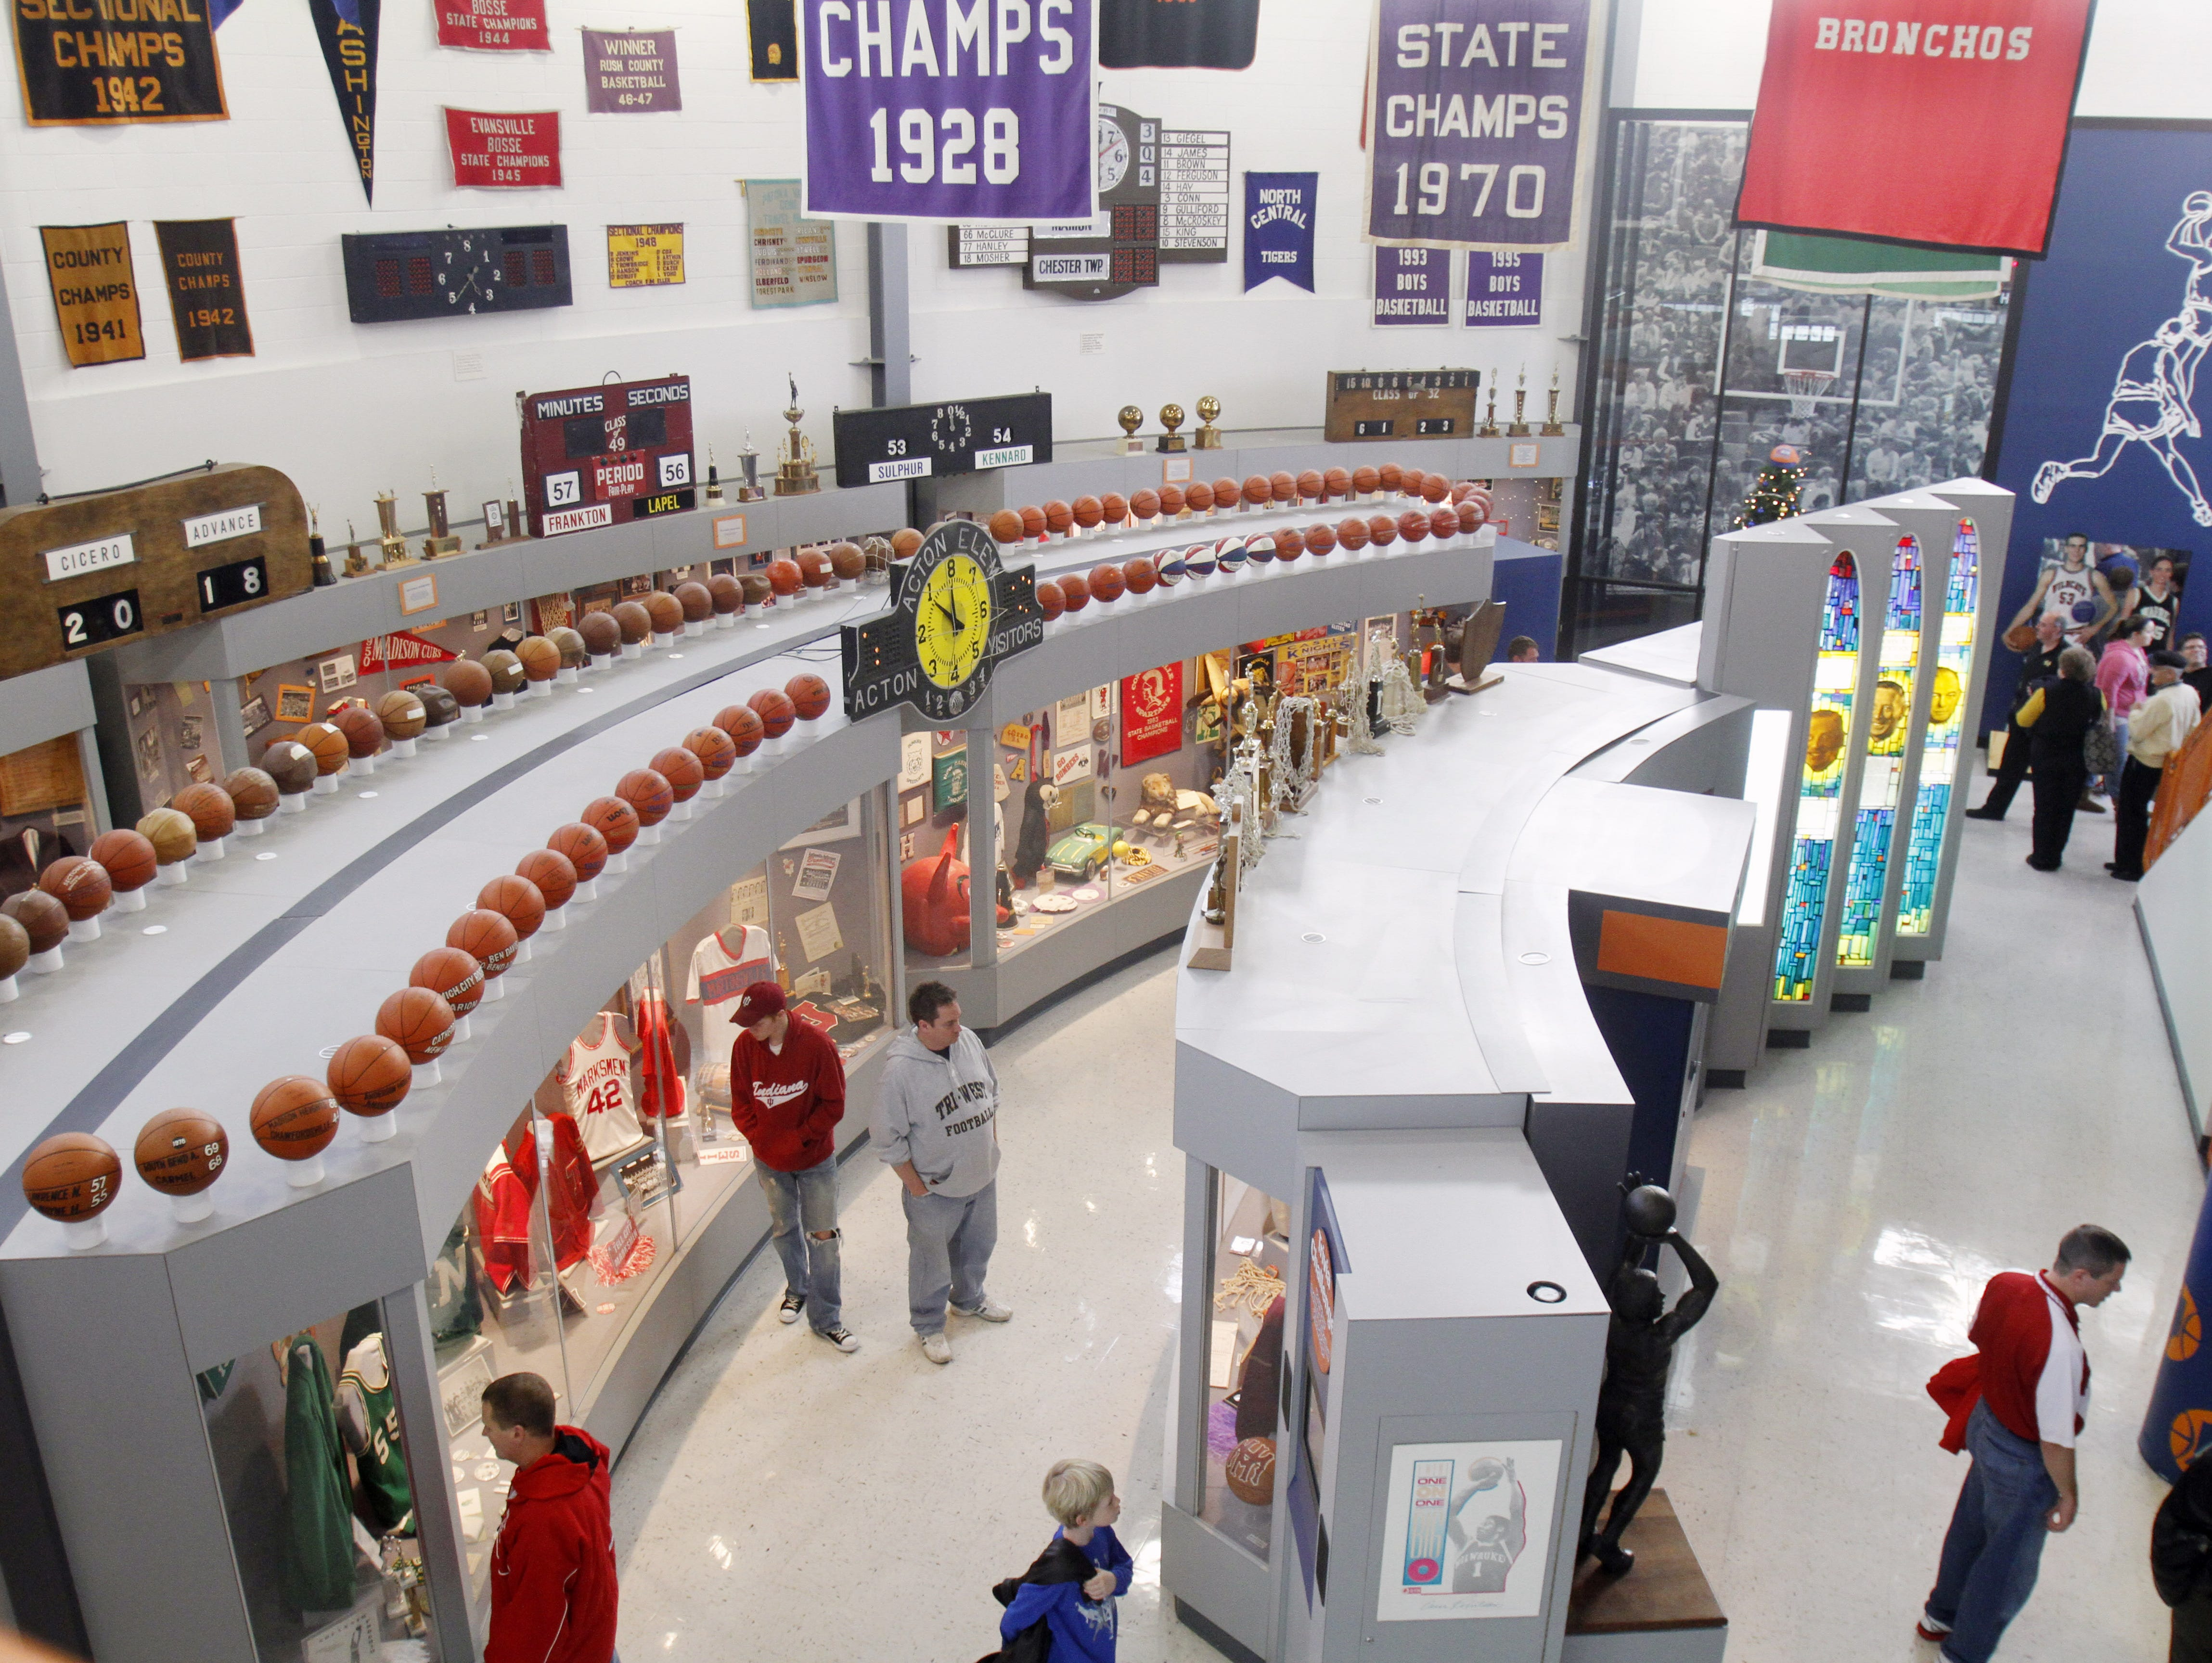 FILE -- Visitors check out exhibits at the Indiana Basketball Hall of Fame in New Castle.